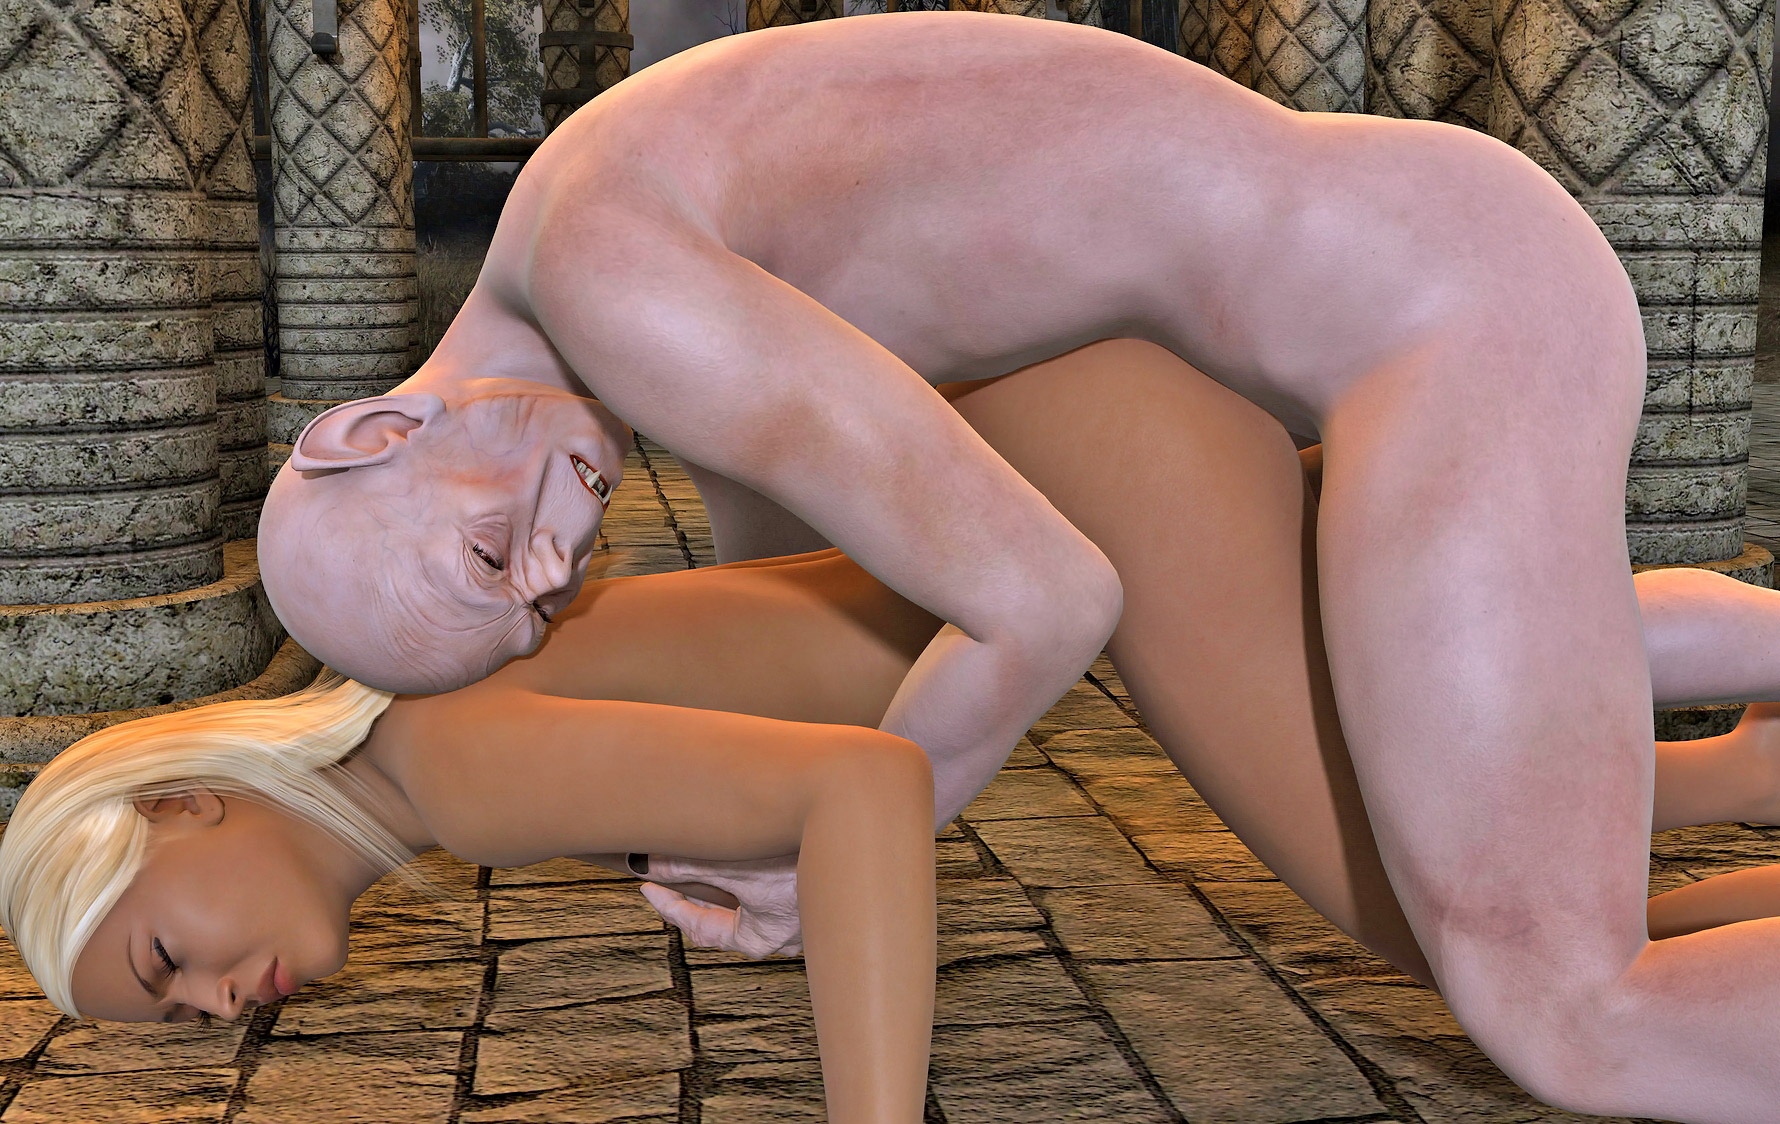 Animation 3d monster sex 3gp videos hentai galleries